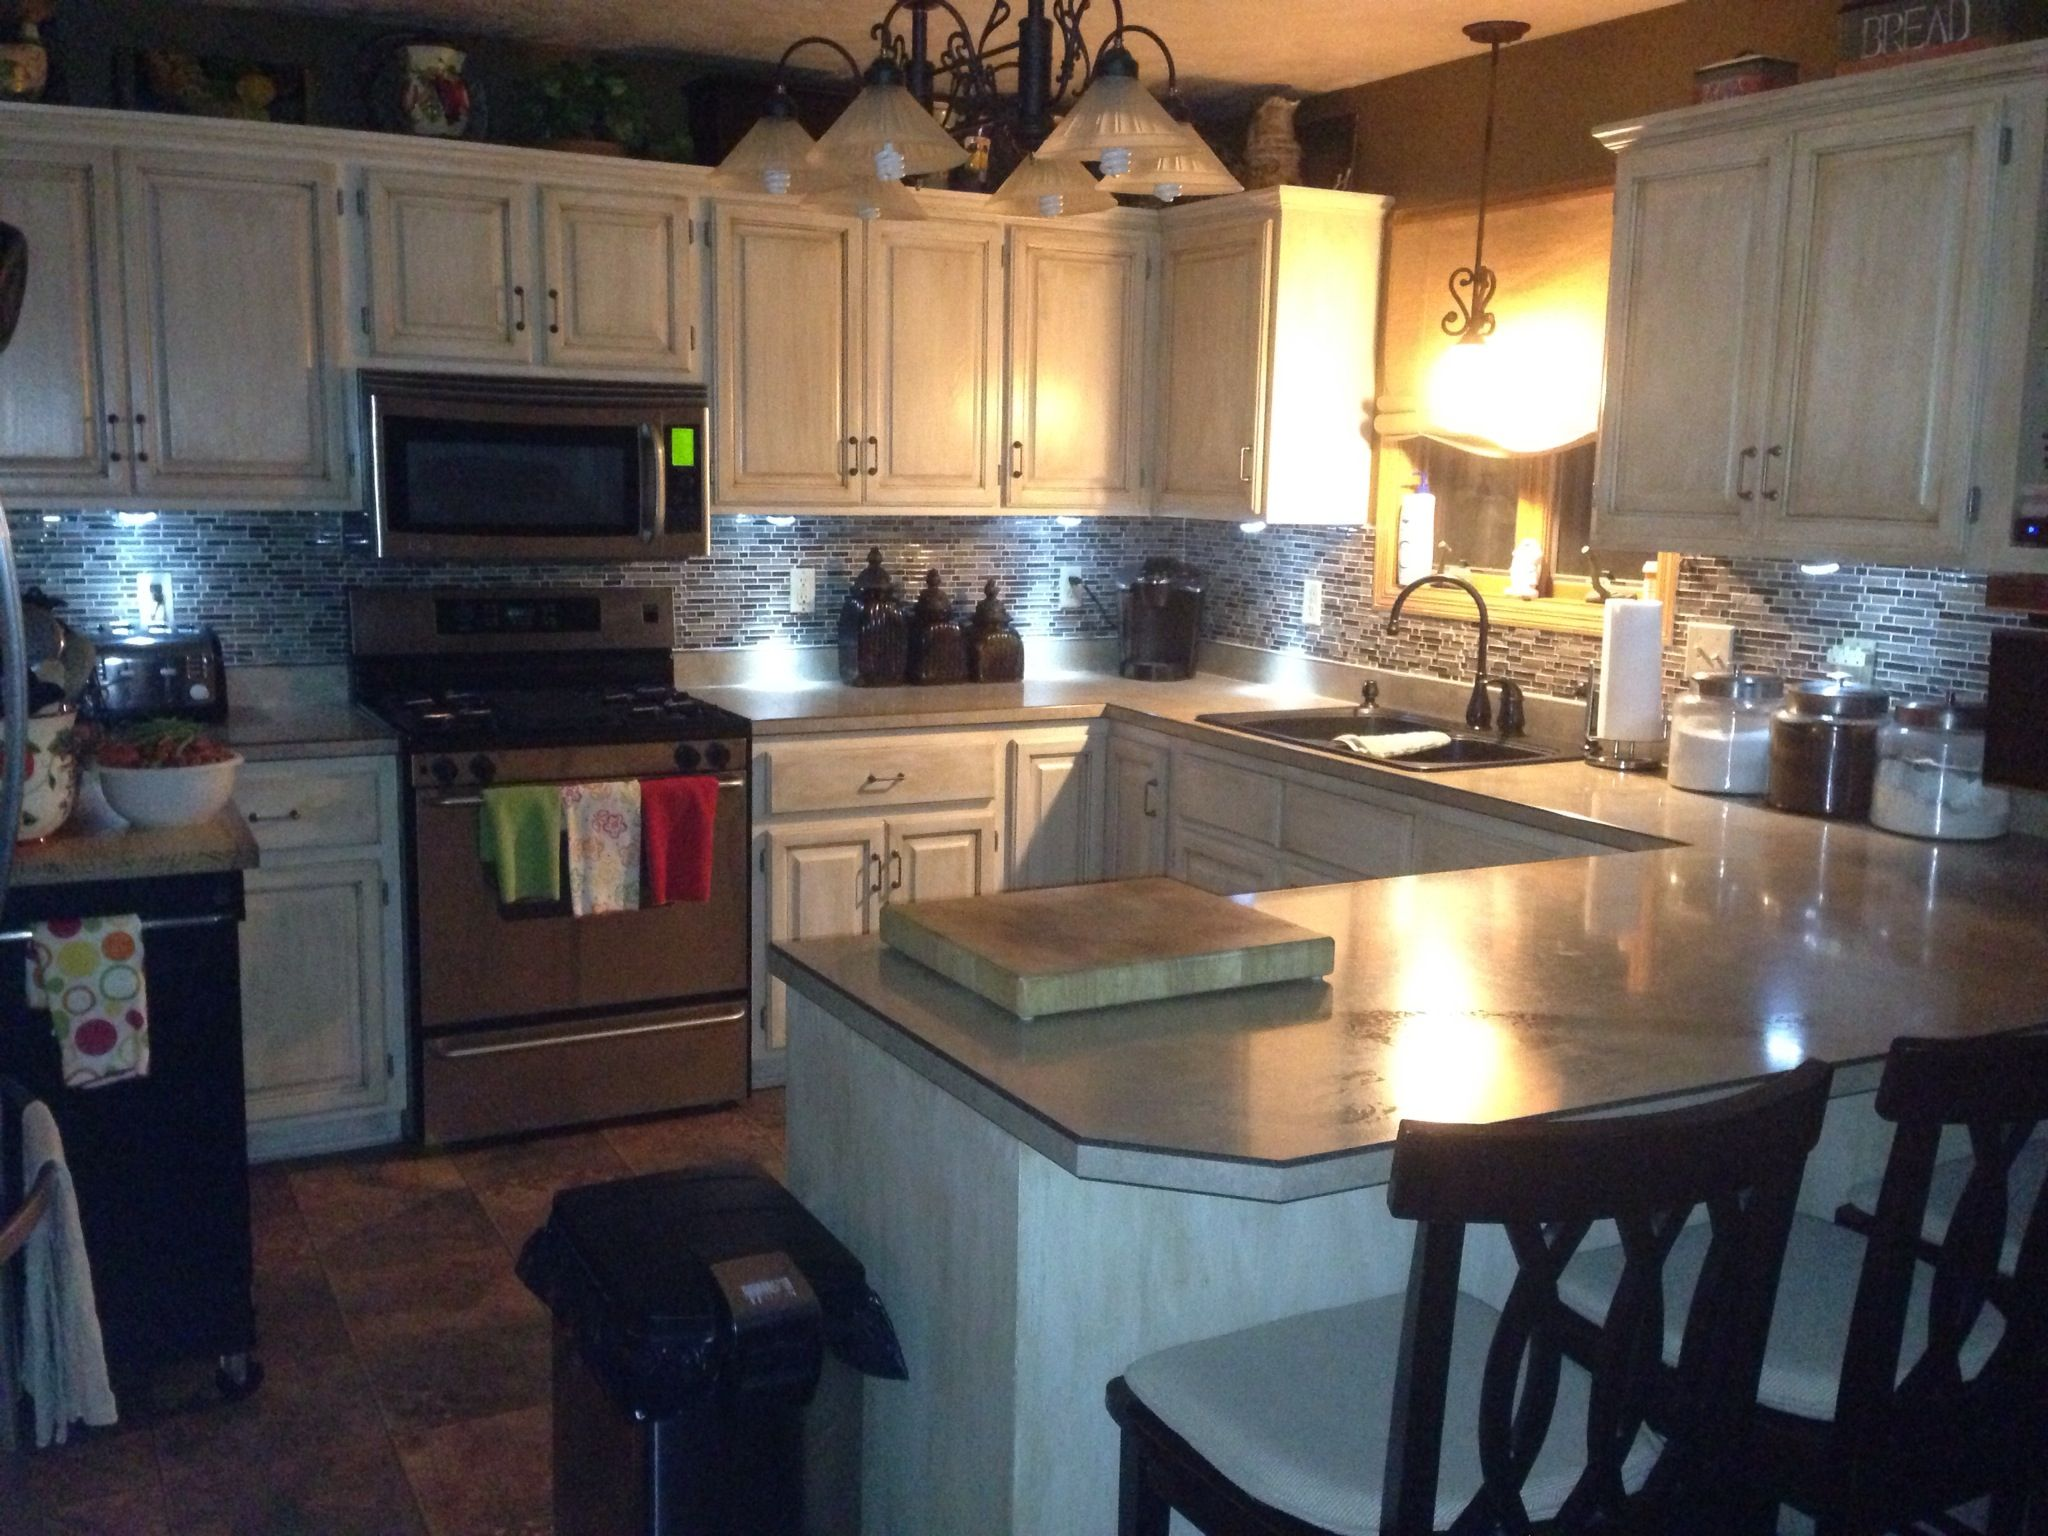 Repainted kitchen cabinets from honey oak to antique white ...